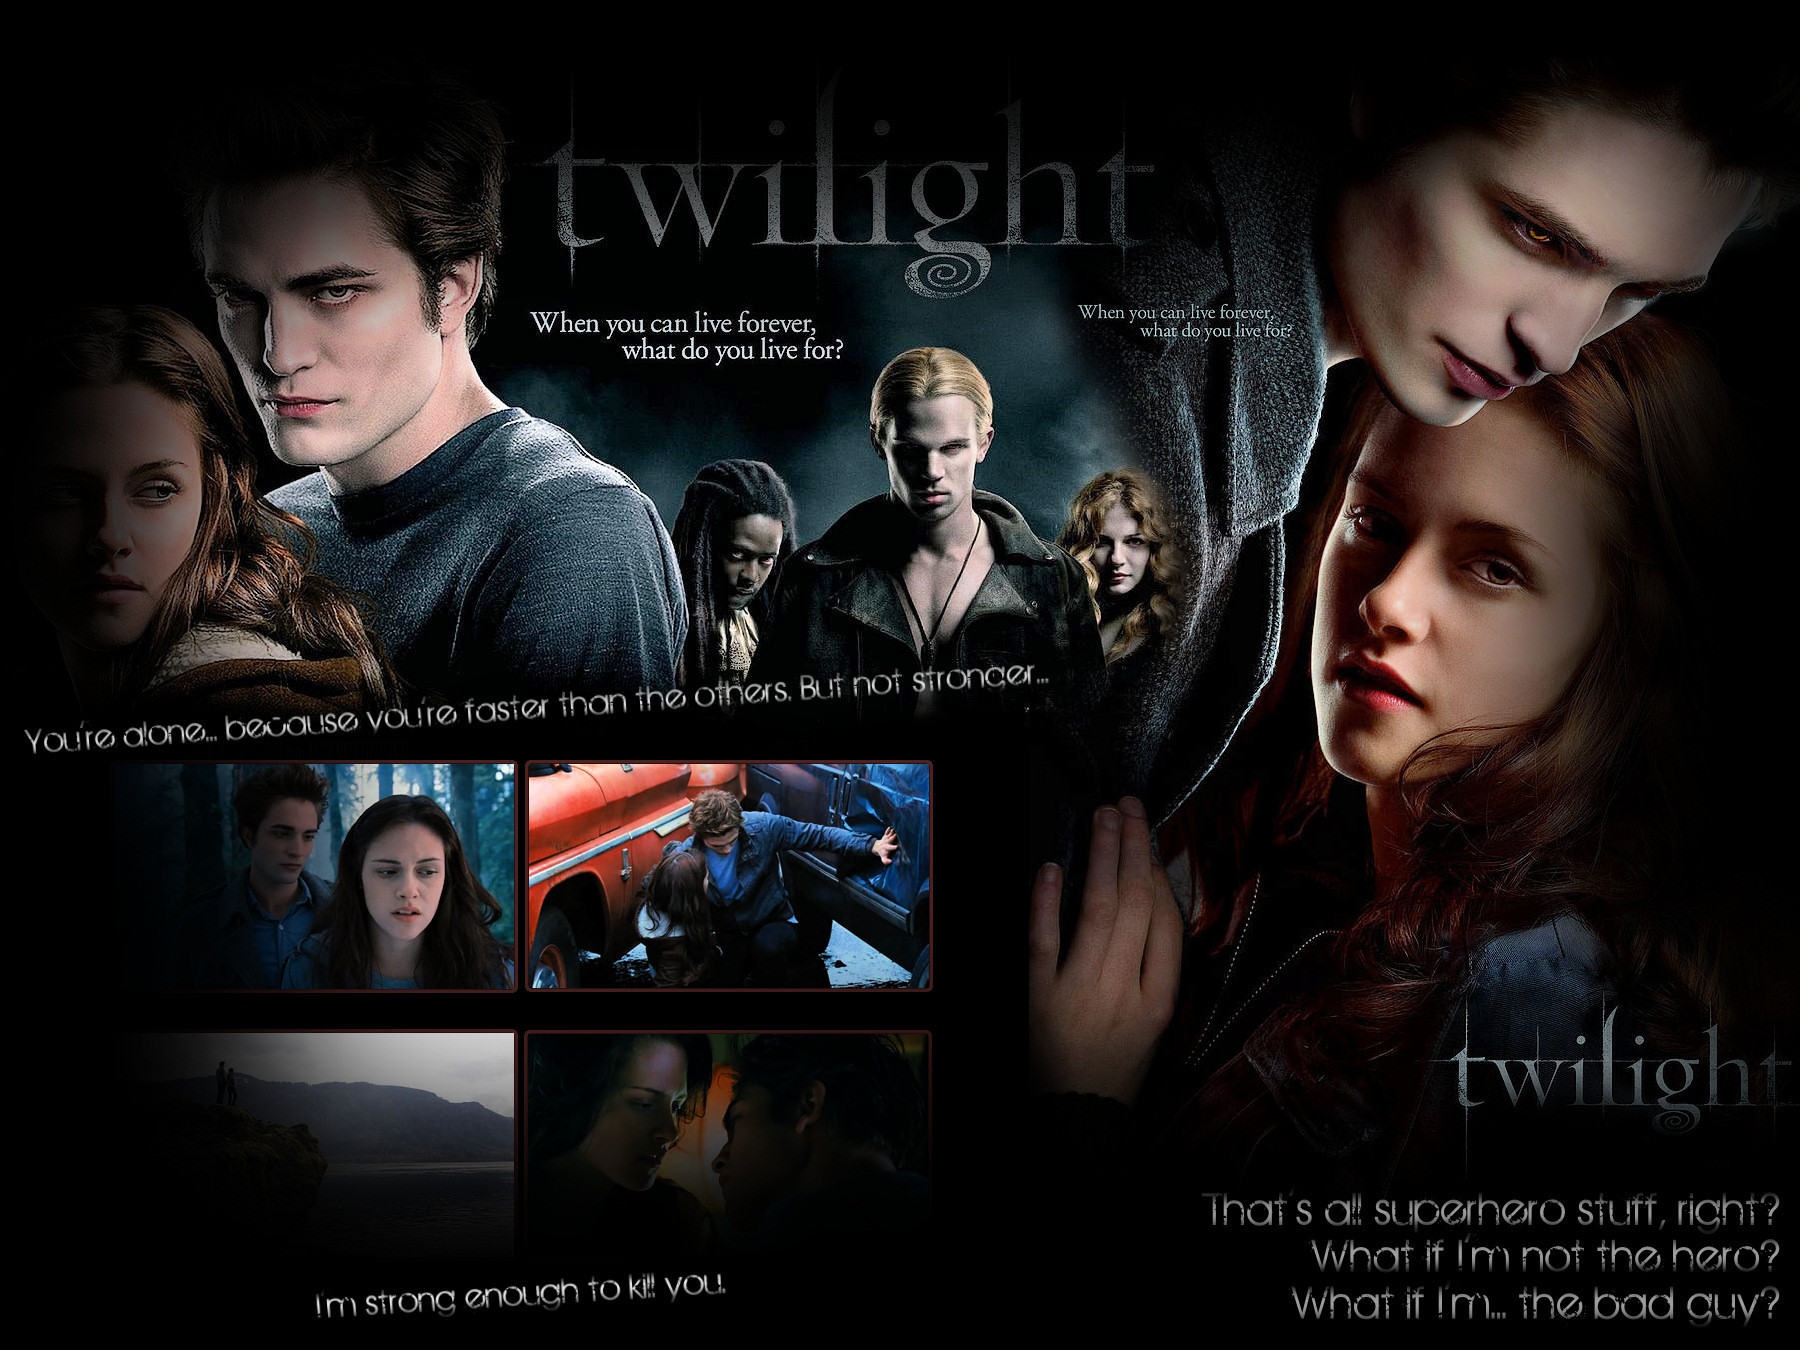 Free Twilight Movie Download - QwickStep Answers Search Engine